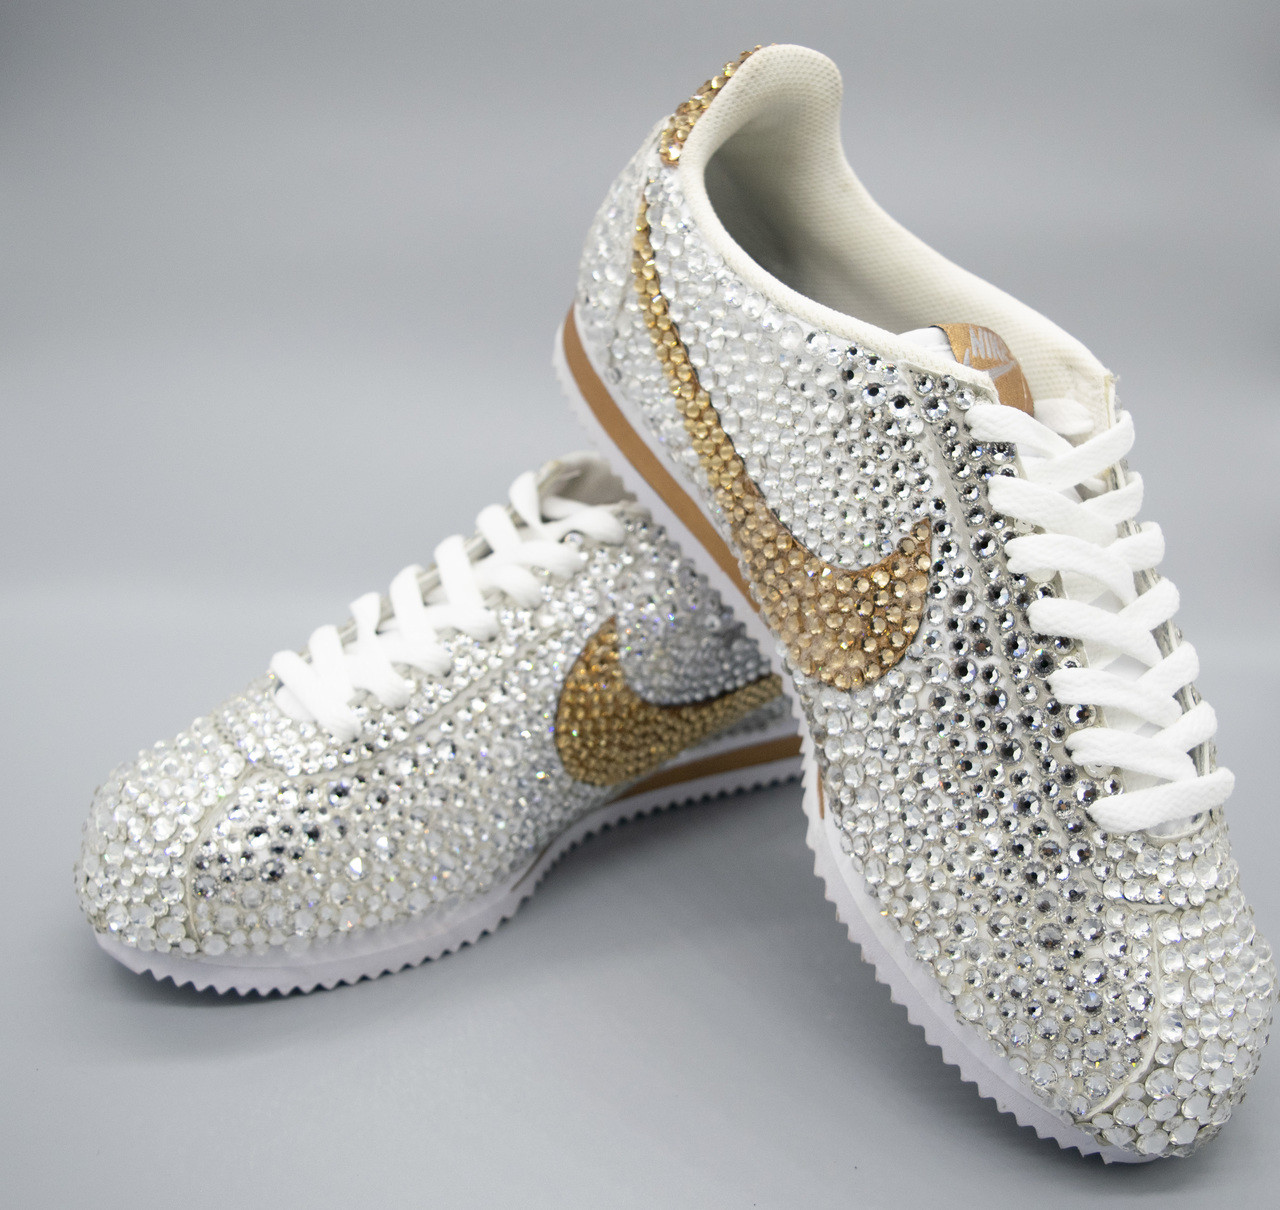 low priced 5cbed fc551 Iced out Cortez Nike Sneakers ...